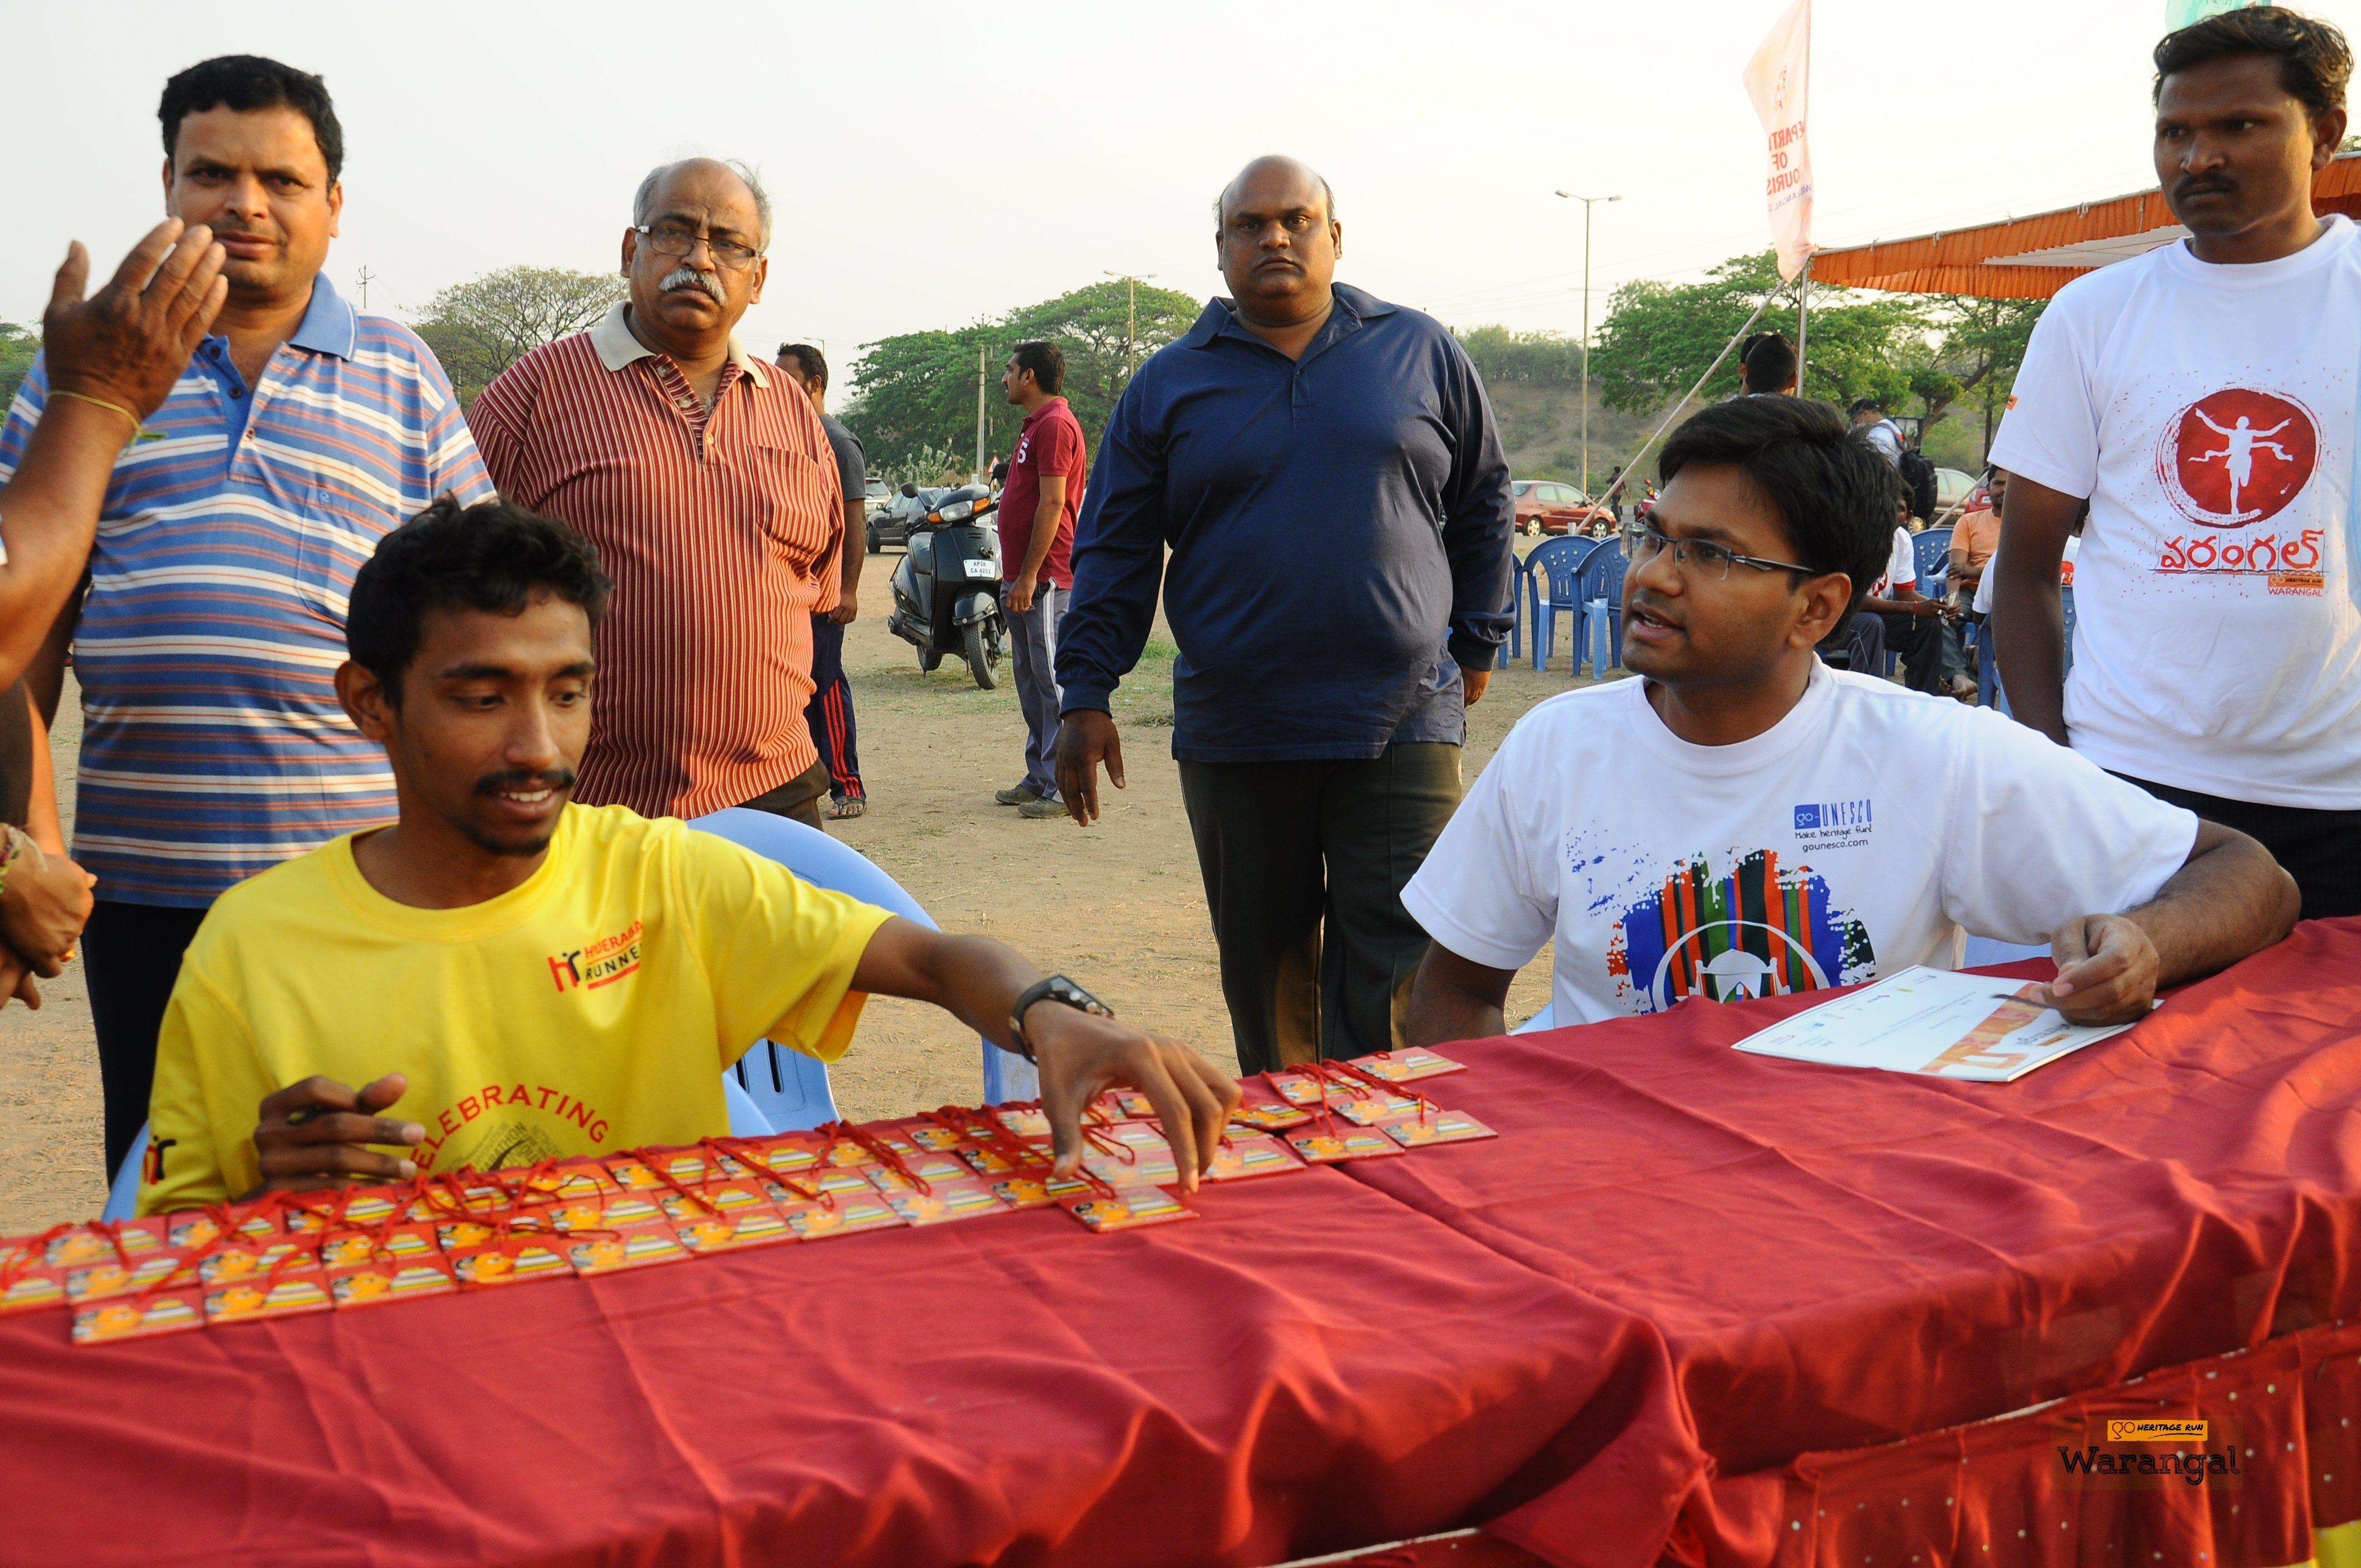 Cheriyal painting Medals ready for finishers